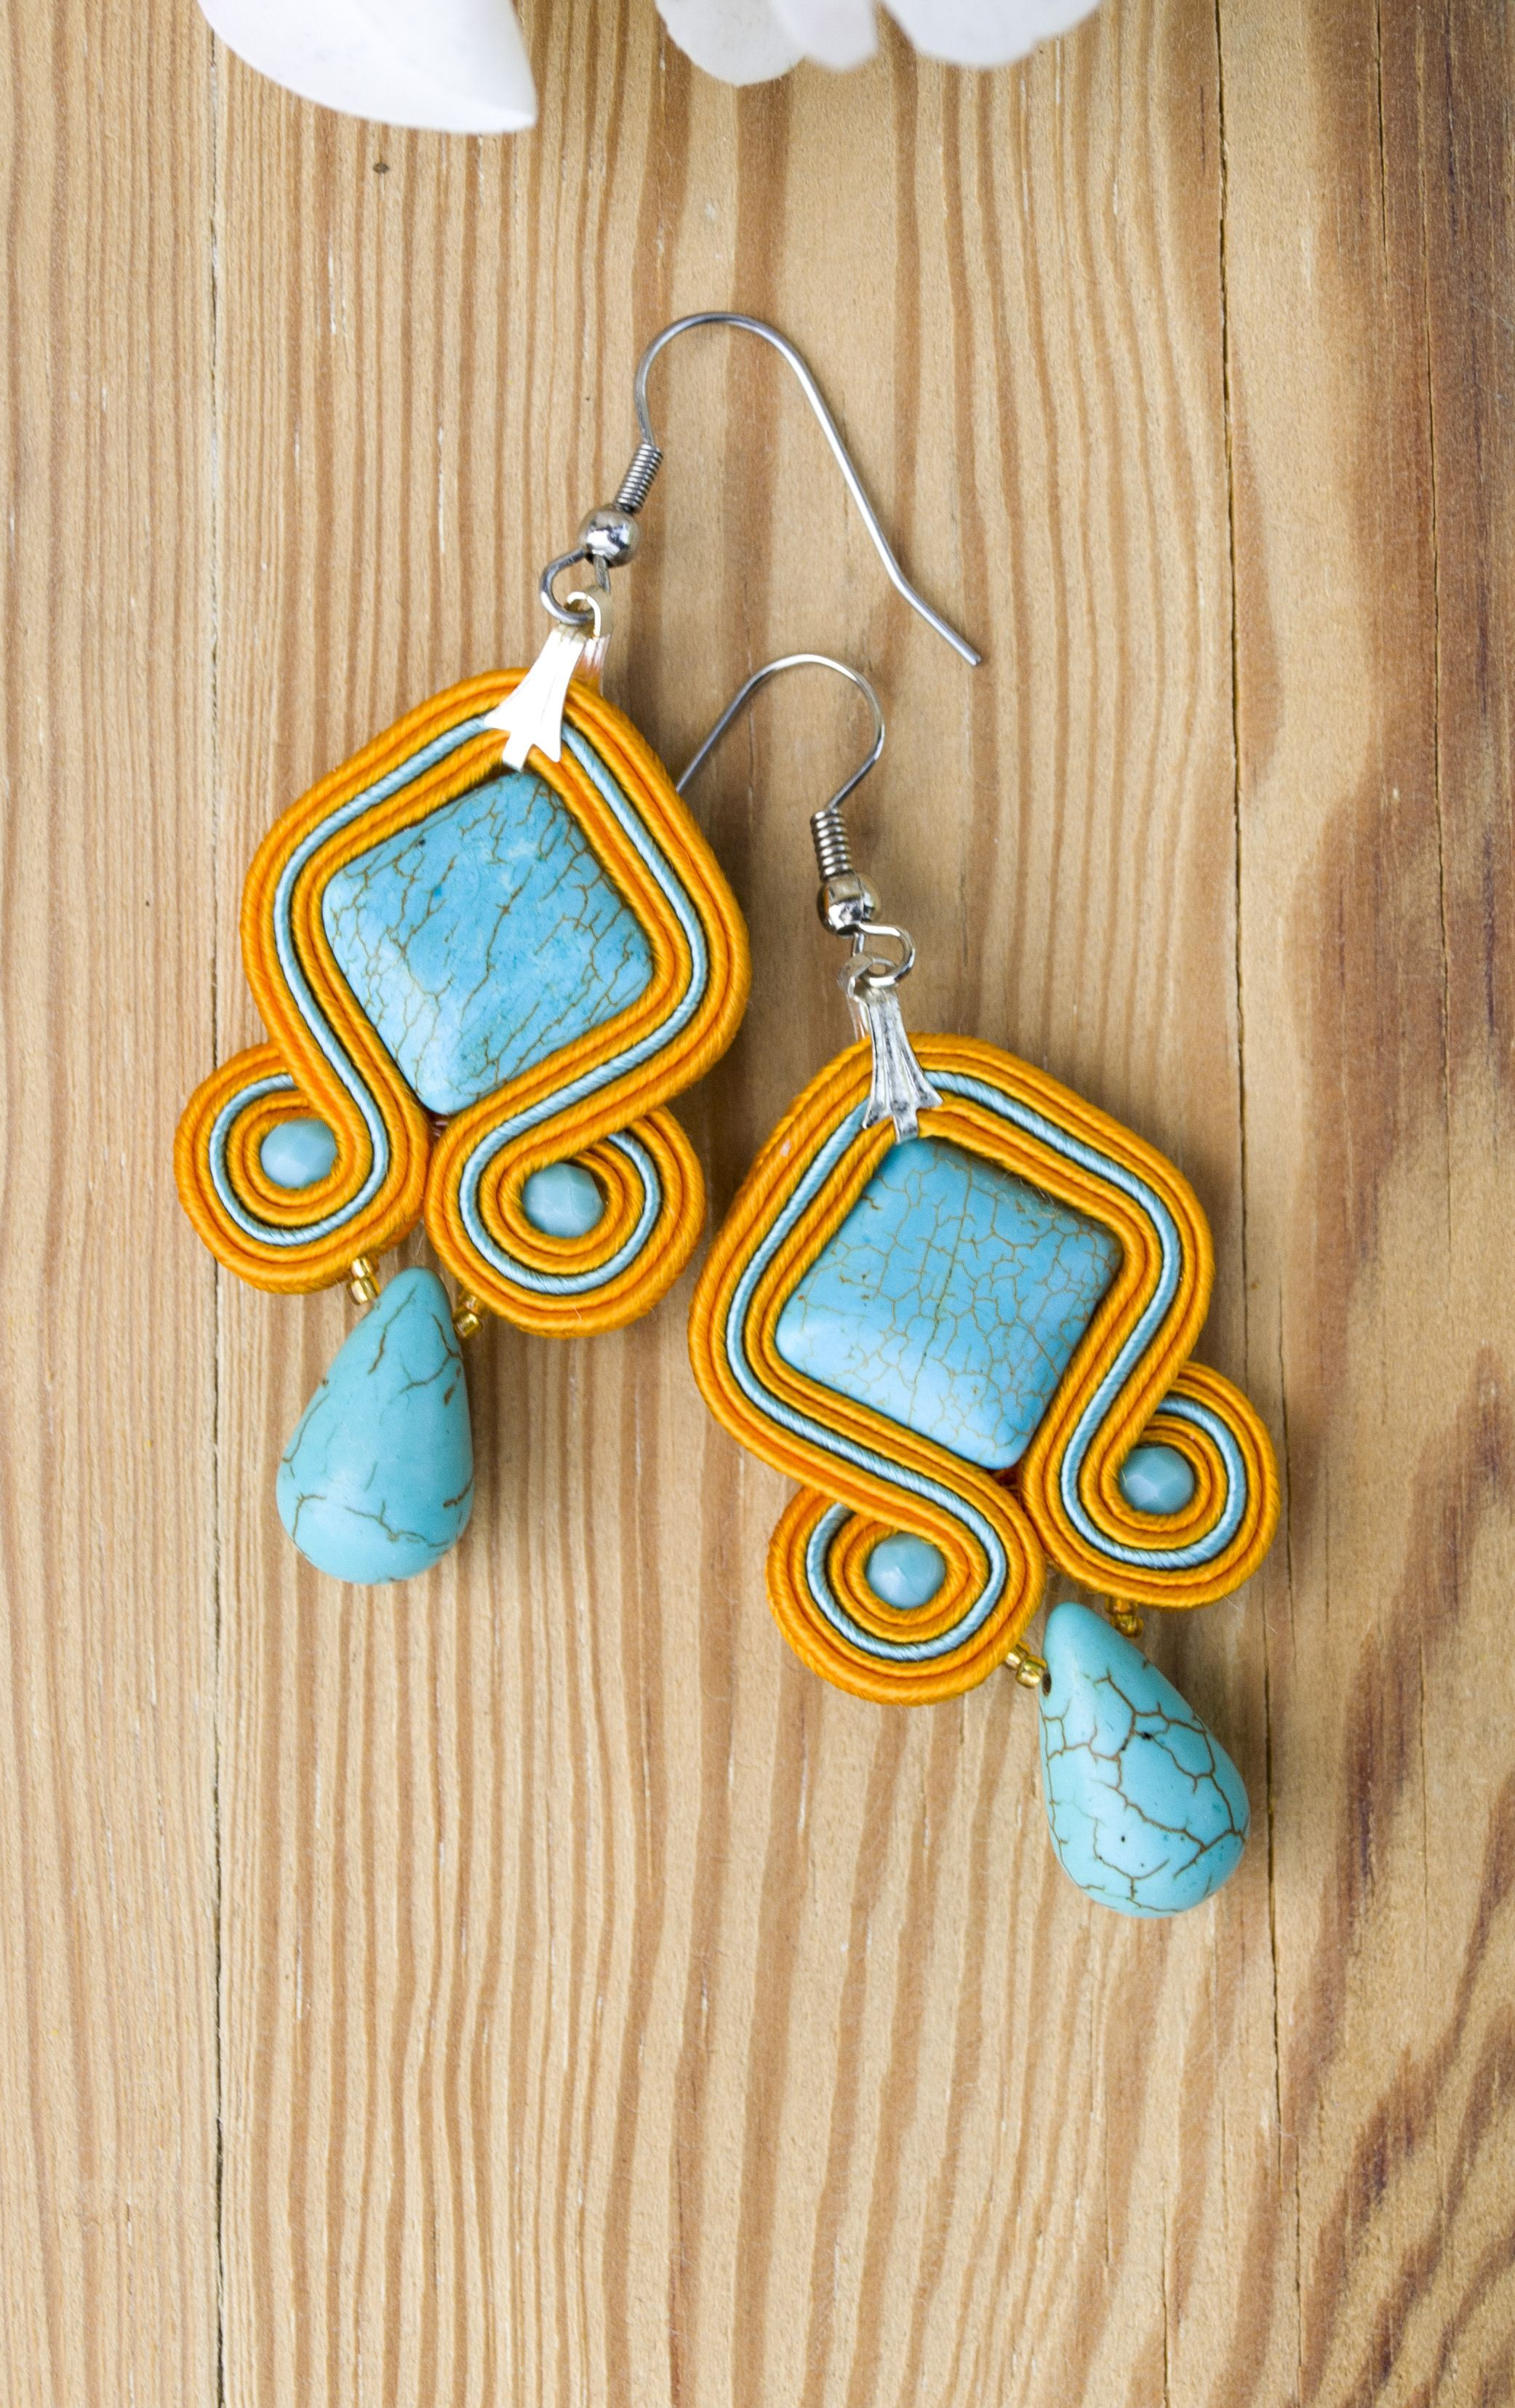 dd2f55947 Earrings made with the soutache embroidery technique using turquoise howlite.  Idea gift for her.